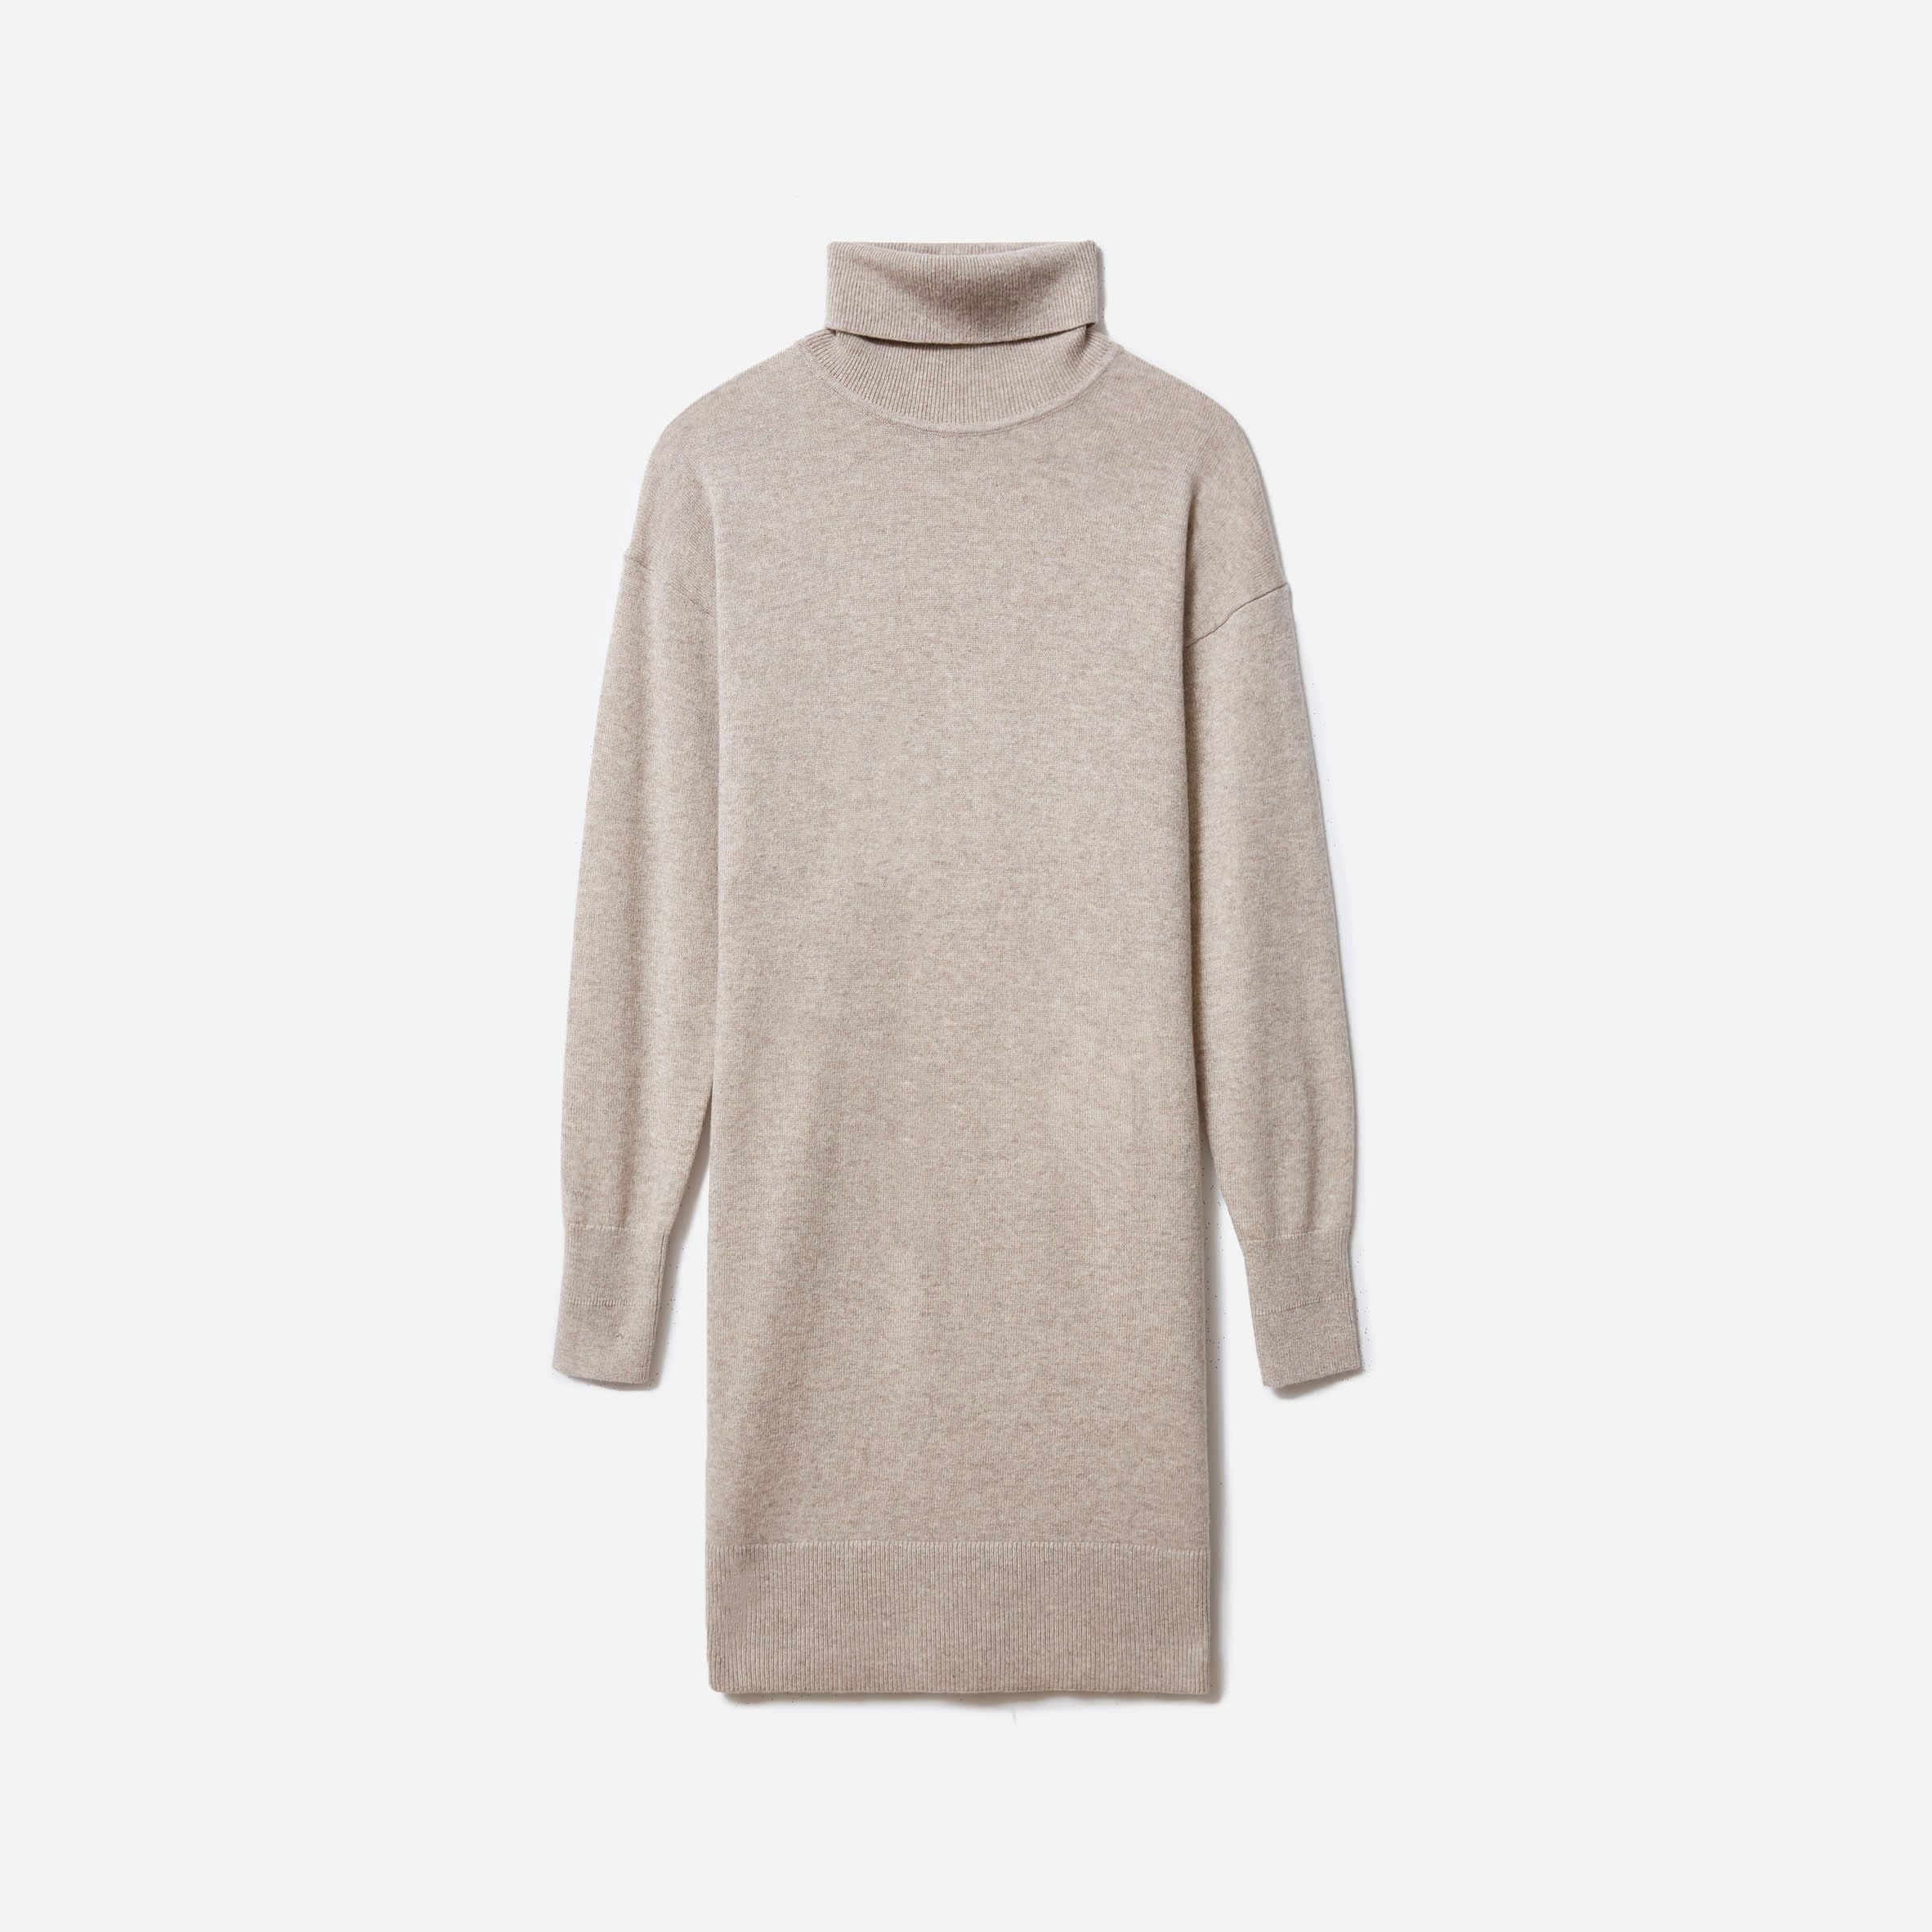 The Coziness Of A Sweater Meets The Ease Of A Dress The Cashmere Turtleneck Dress Features A Clas Turtle Neck Dress Cashmere Sweater Dress Cashmere Turtleneck [ 2400 x 2400 Pixel ]